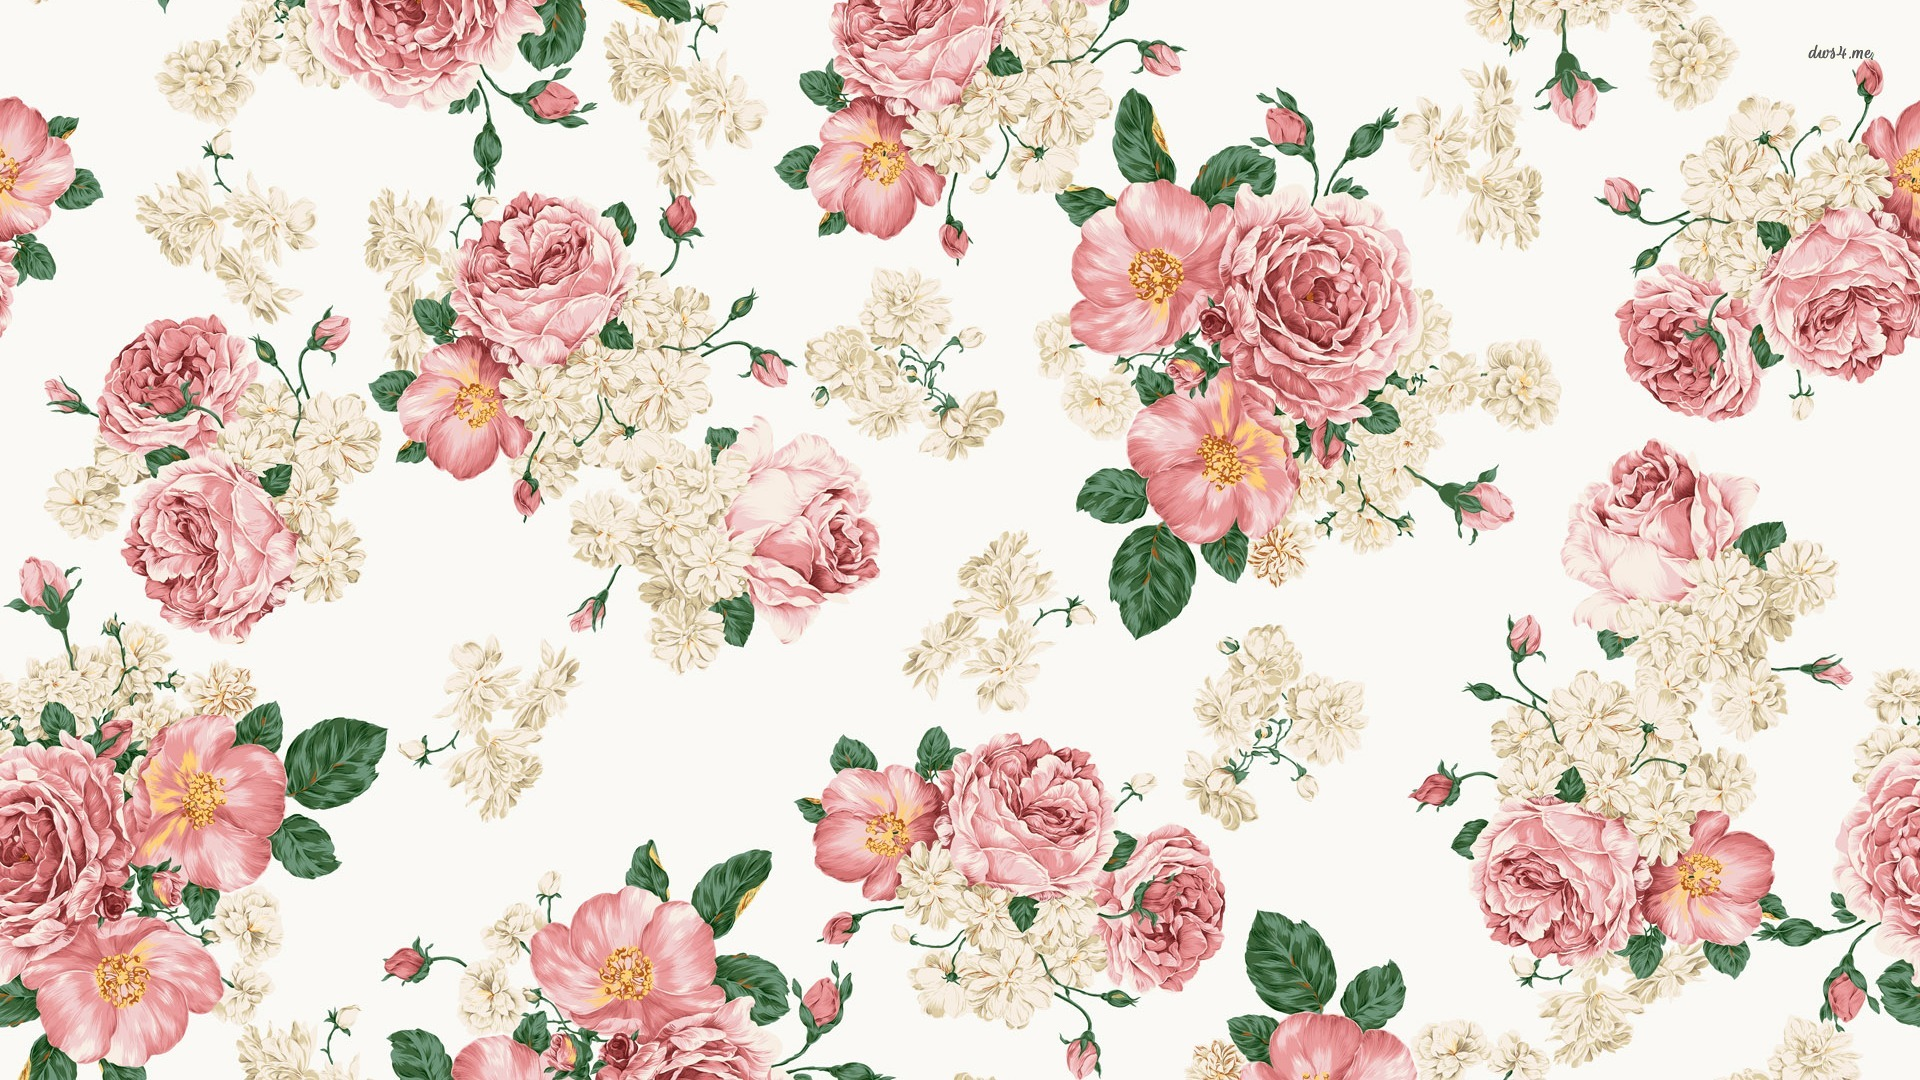 Vintage Roses - Wallpaper, High Definition, High Quality ...